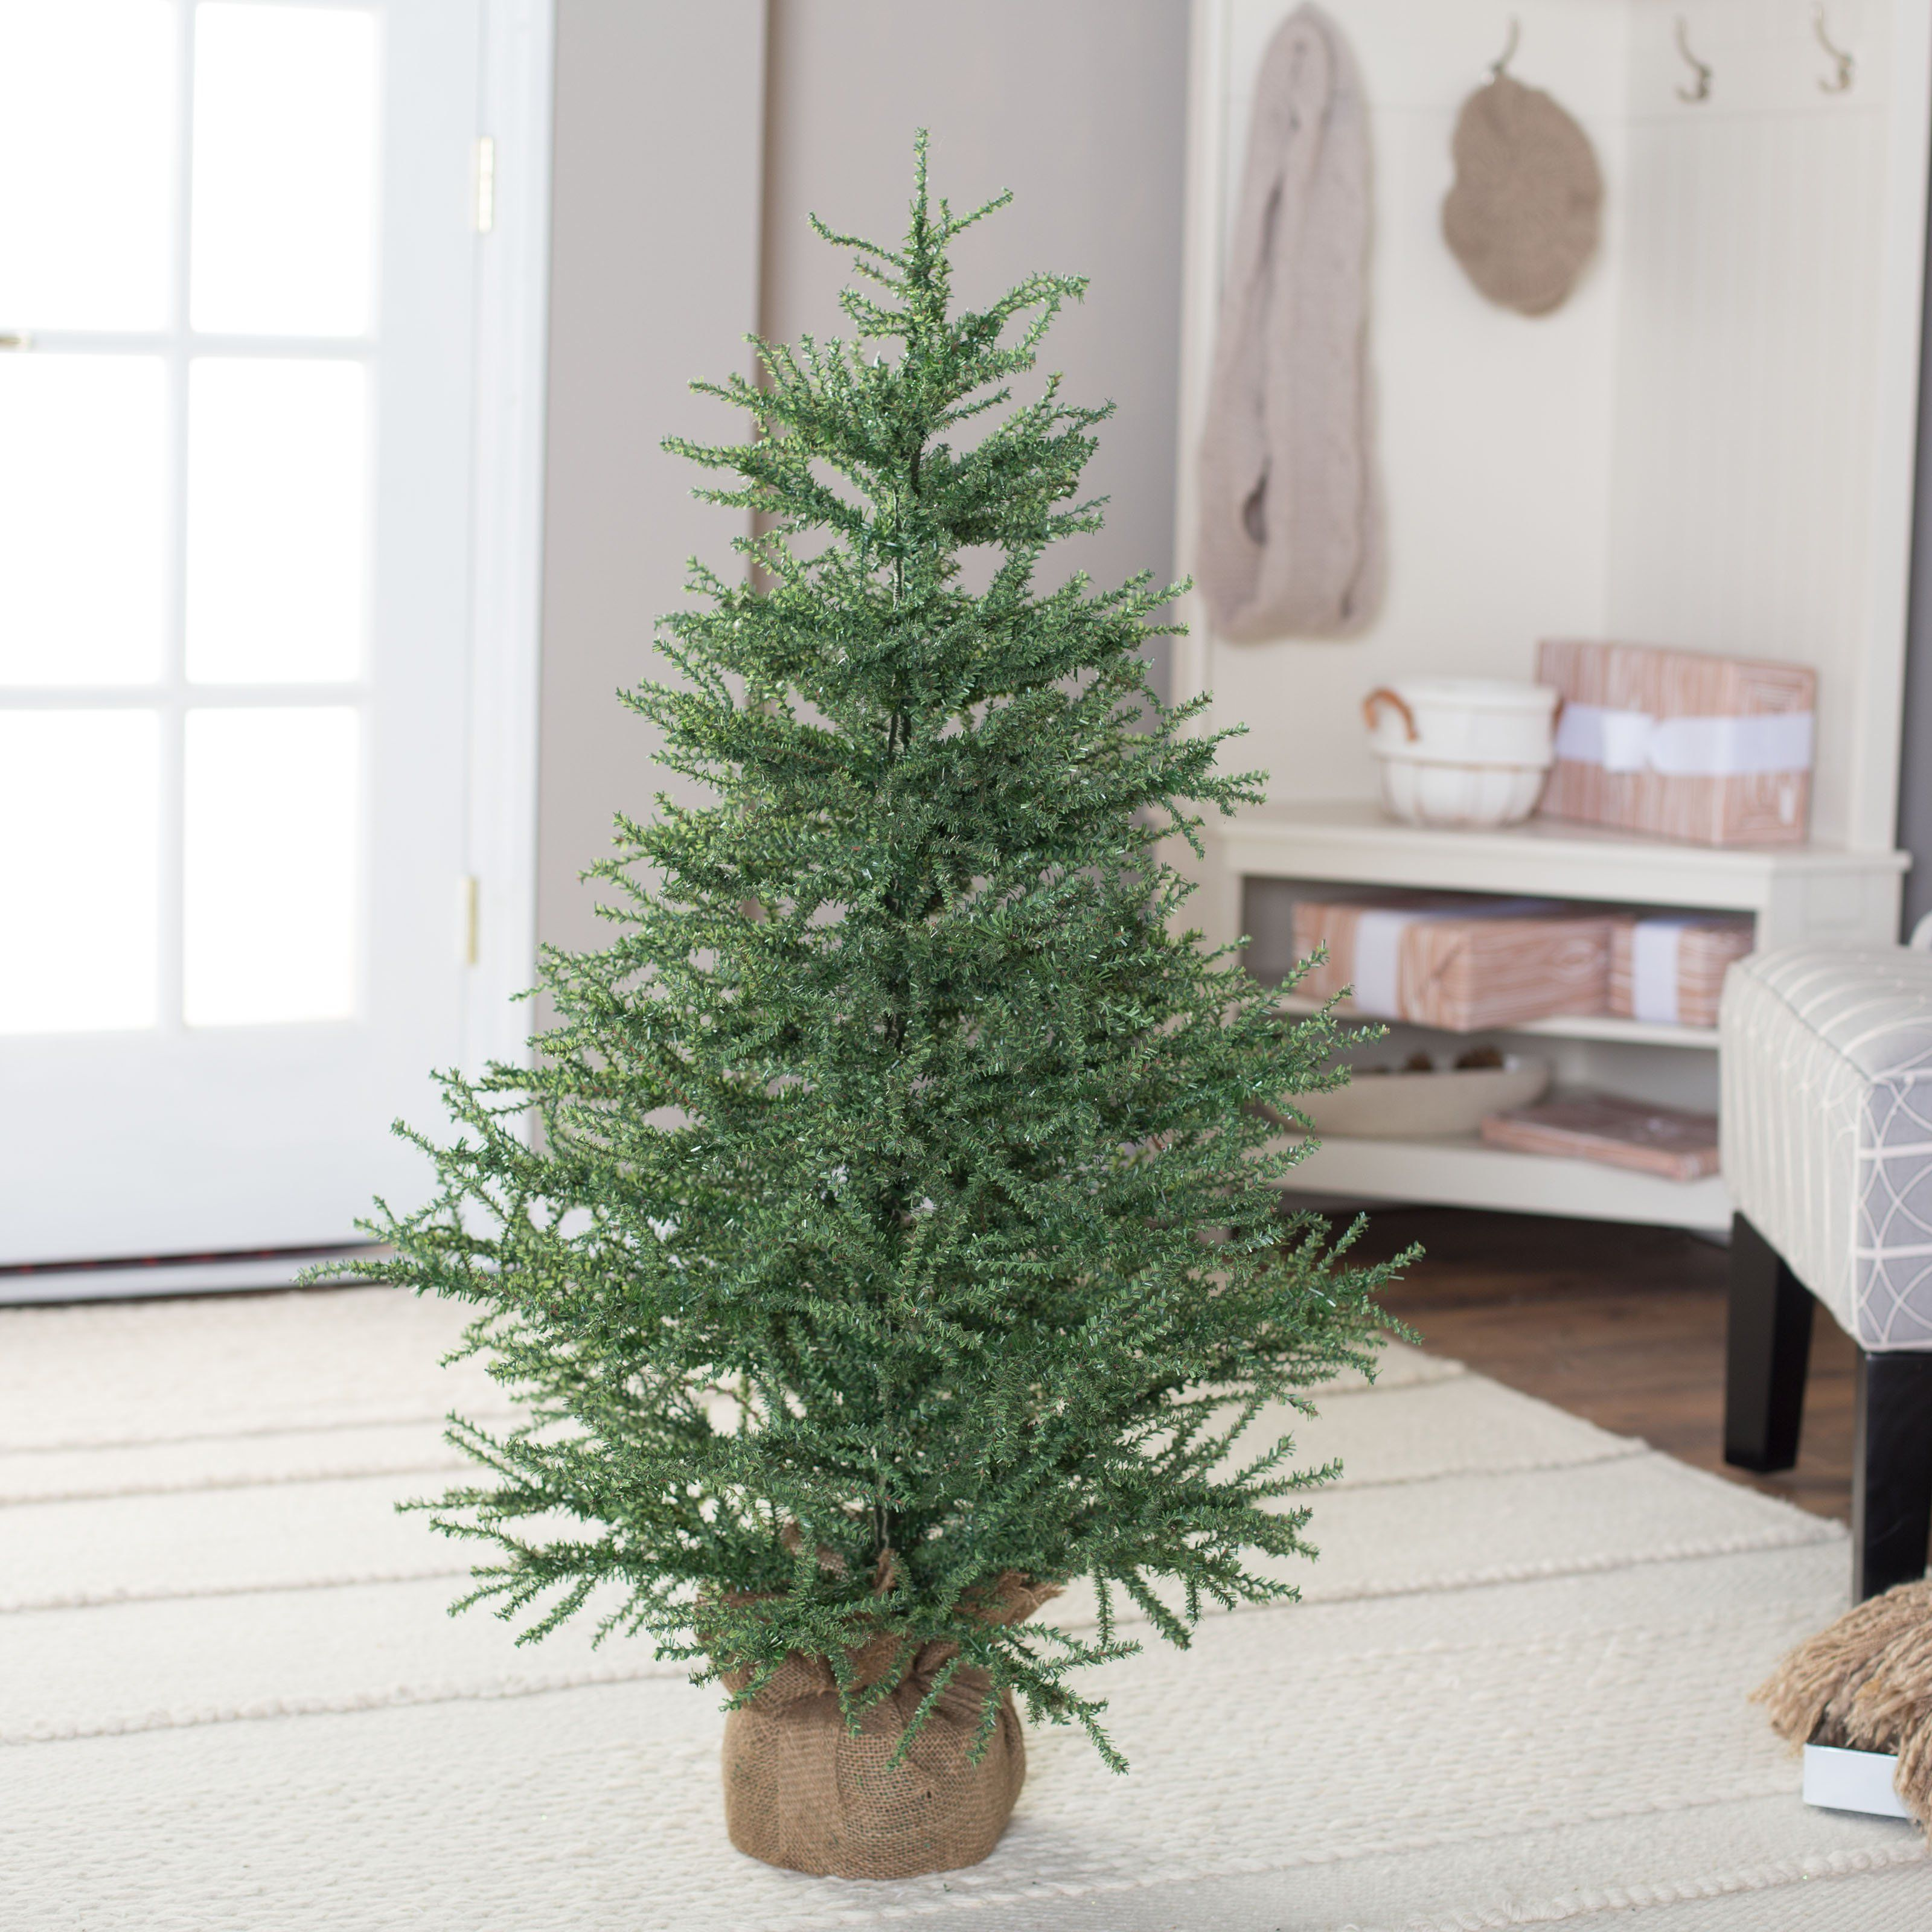 42 inch unlit pistol pine christmas tree by sterling tree company from hayneedlecom - Sterling Christmas Trees